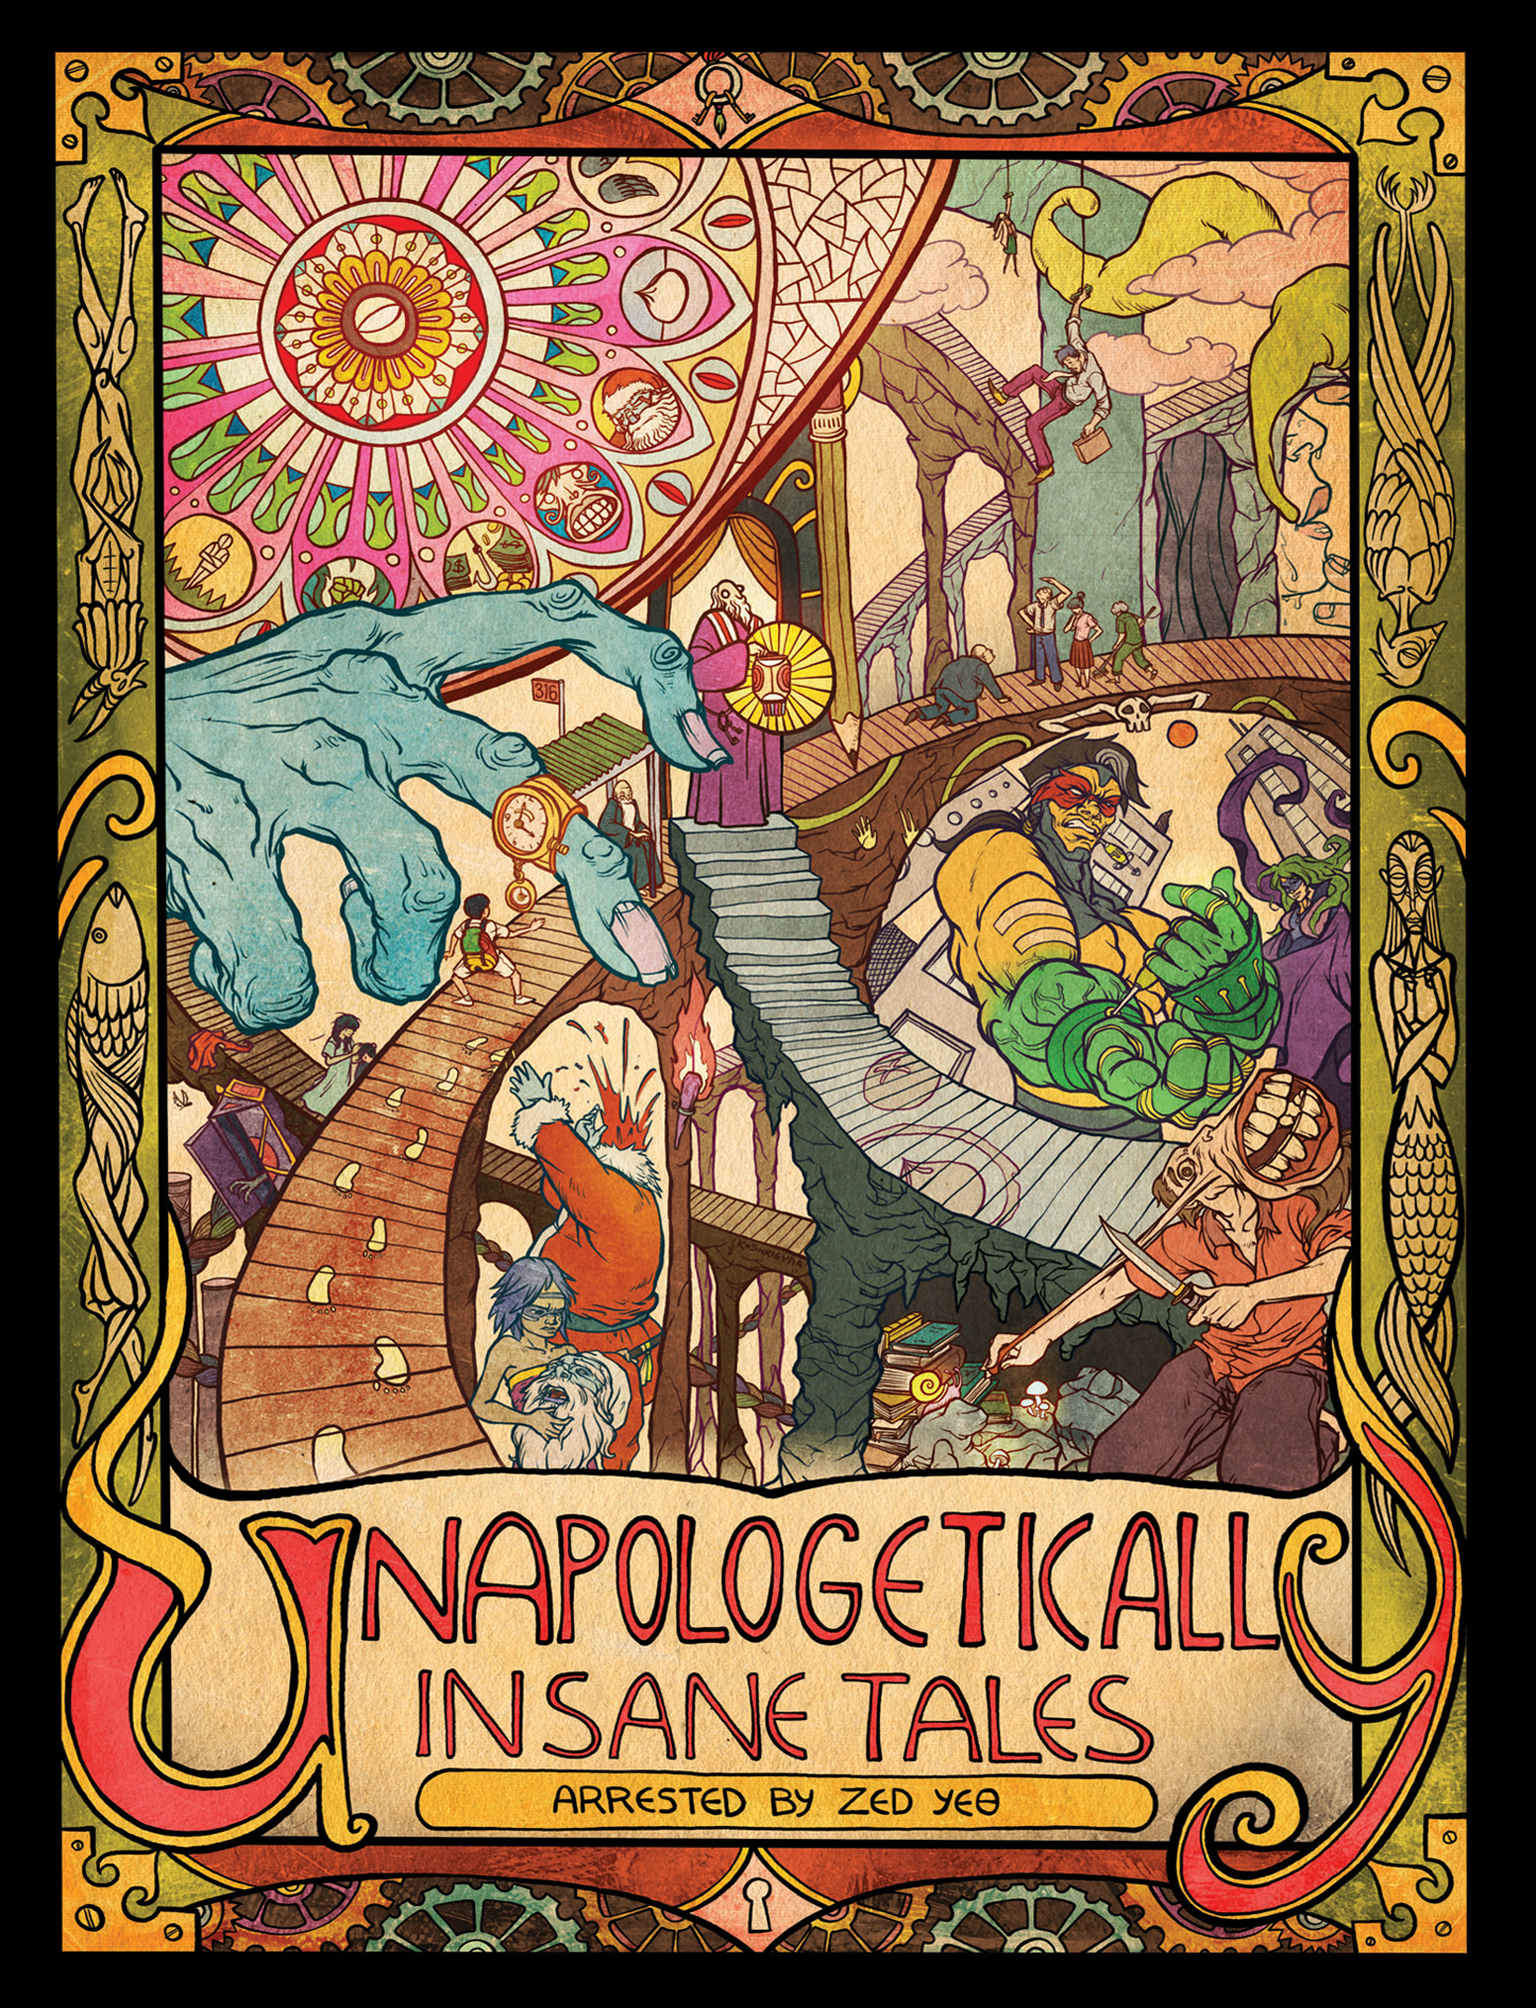 Unapologetically Insane Tales